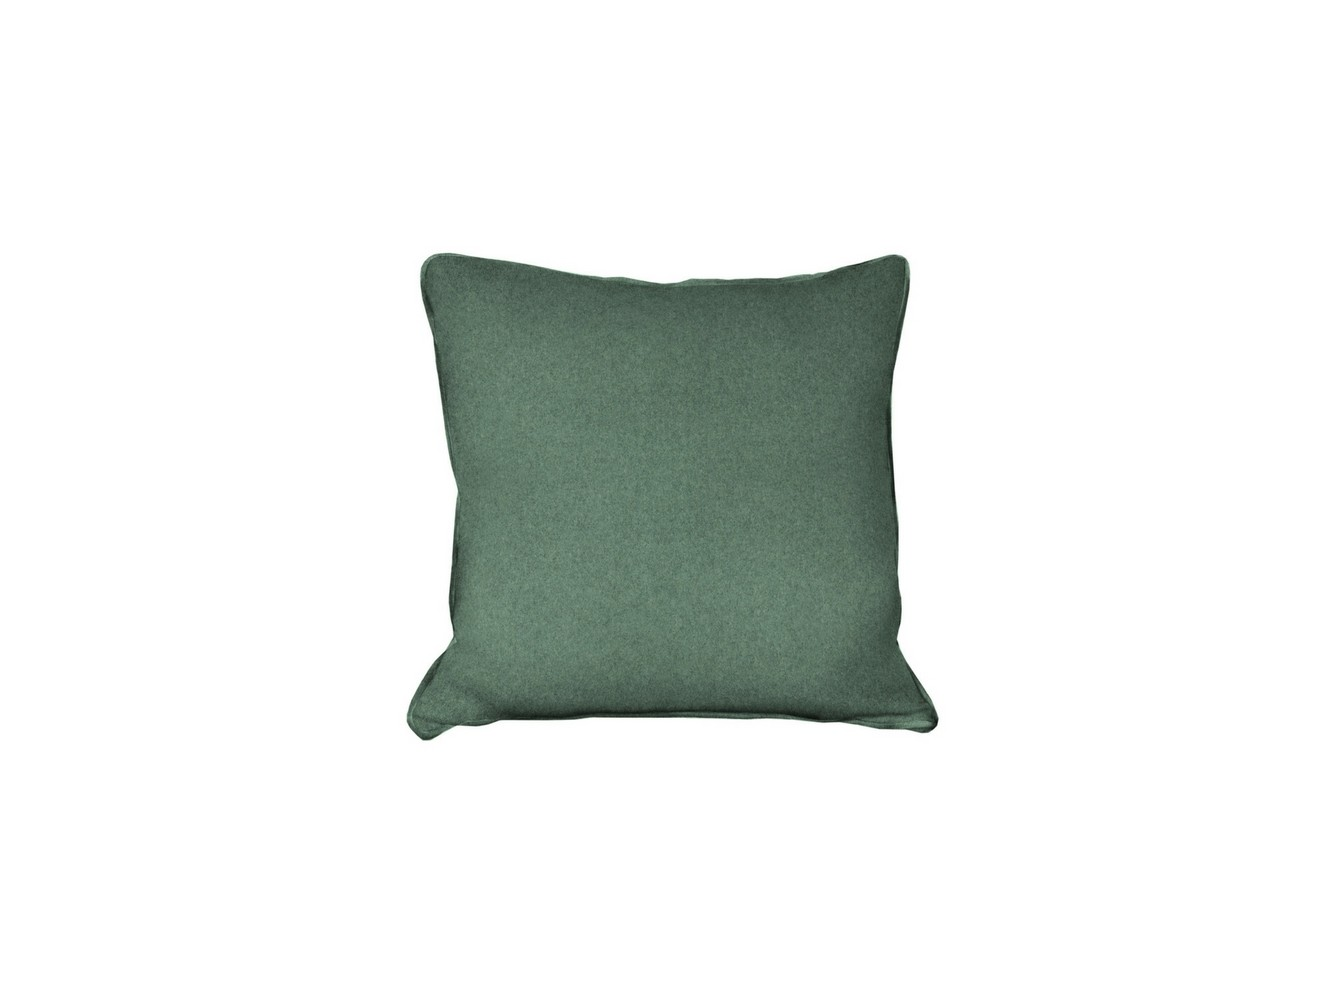 Extra Scatter Cushions - Fabric Bay Leaf